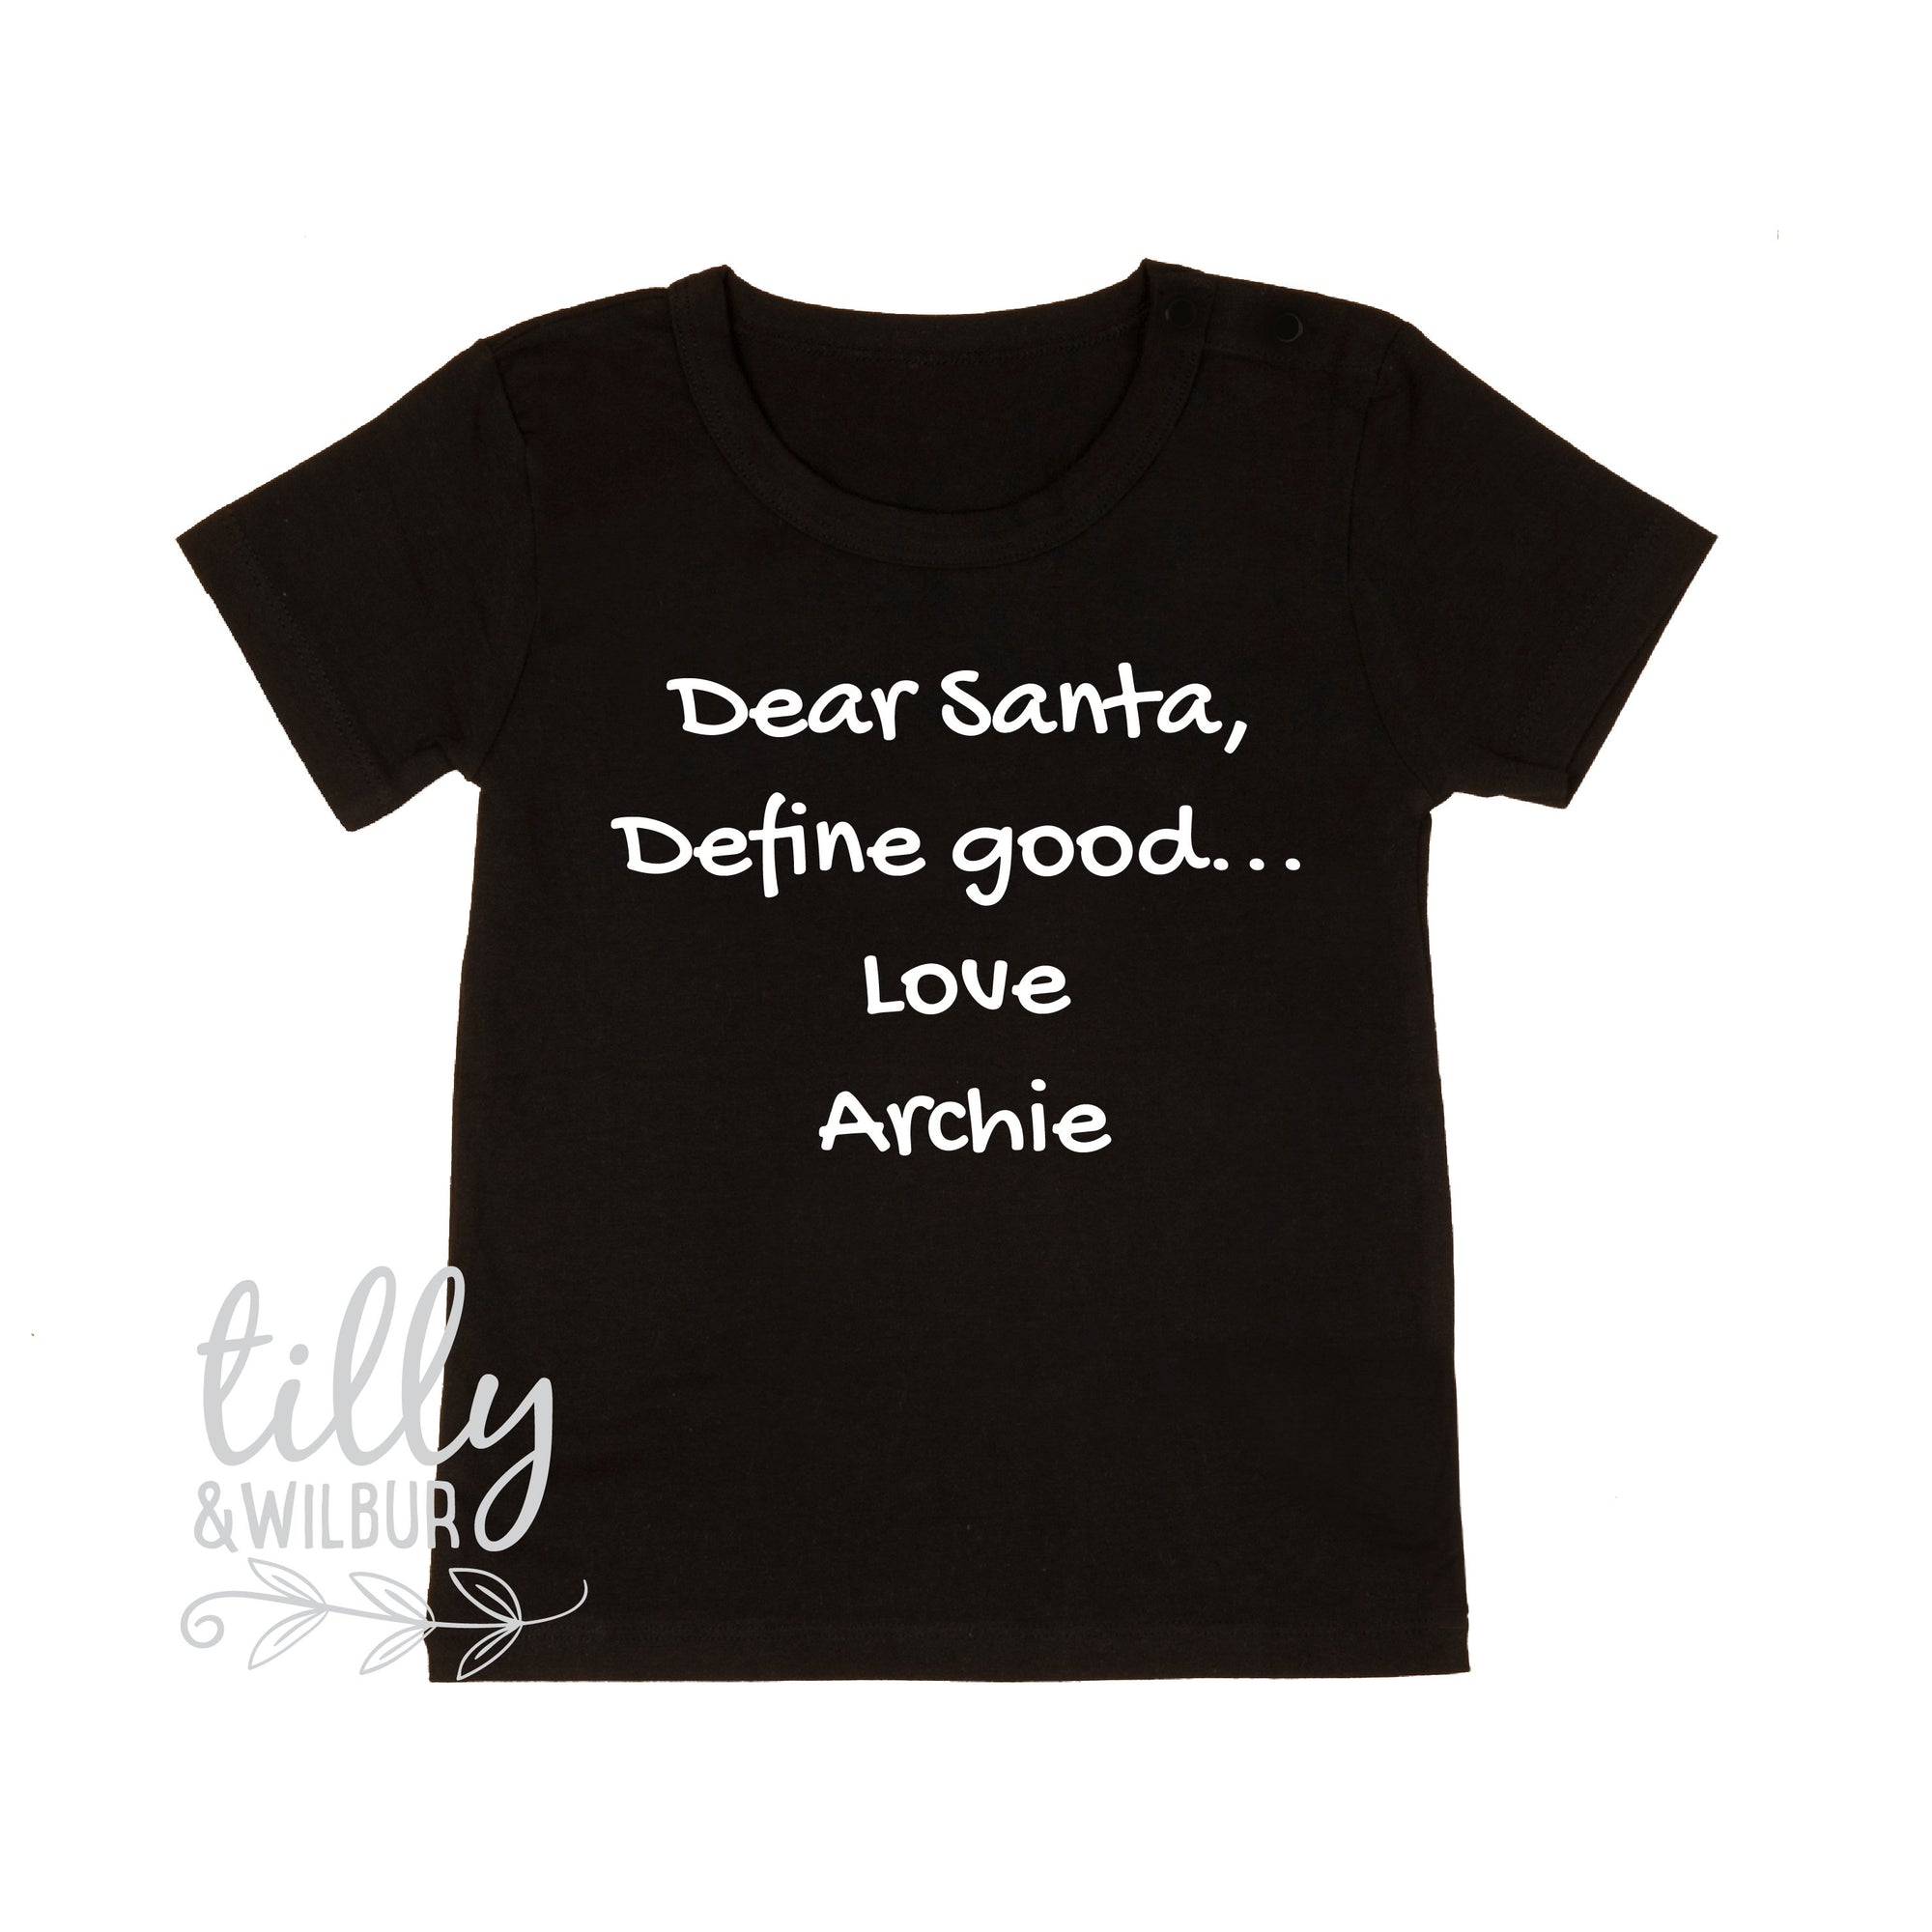 Dear Santa, Define Good... Love... Personalised Christmas T-Shirt, Personalised Shirt With Child's Name, Xmas Gift, Funny Christmas T-Shirt